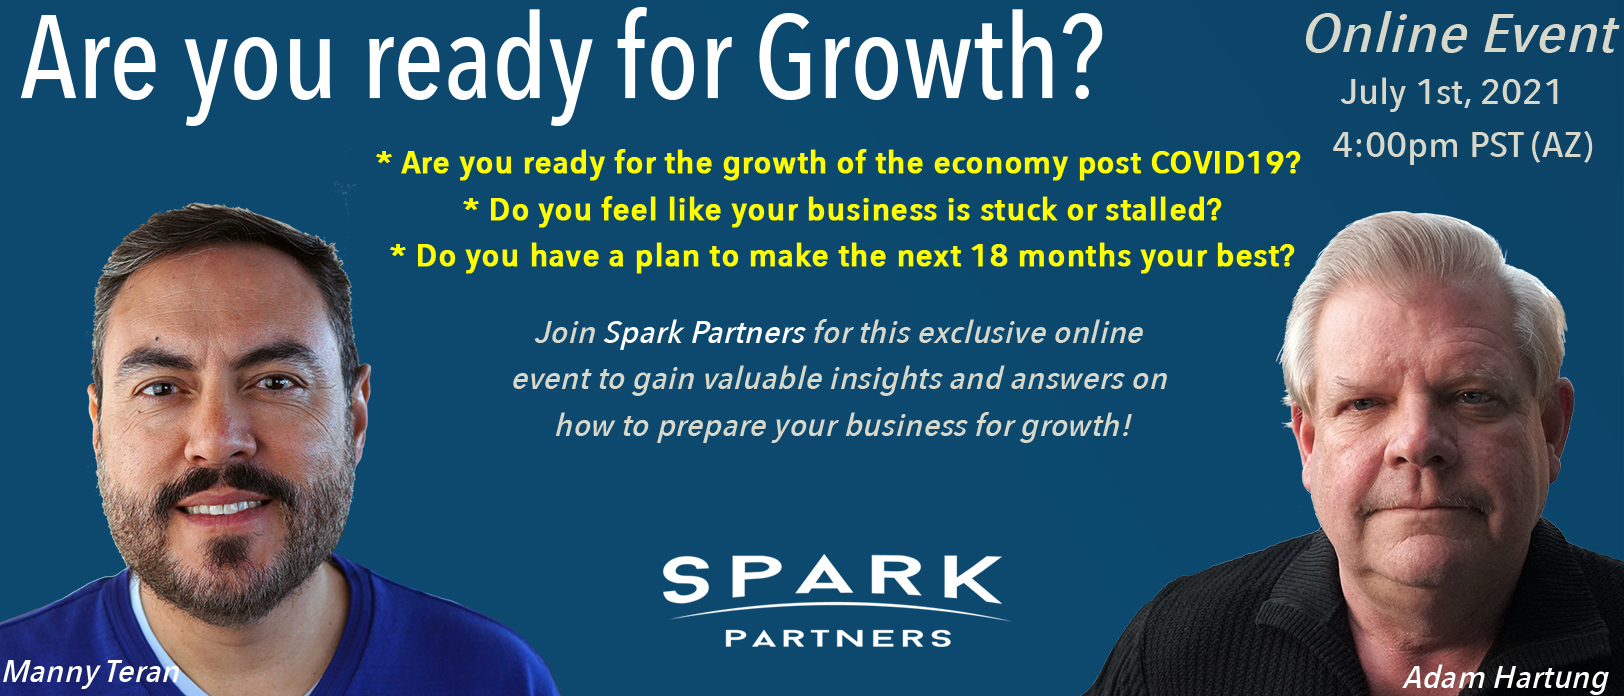 Are you ready for Growth? Online VIP webinar by Spark Partners